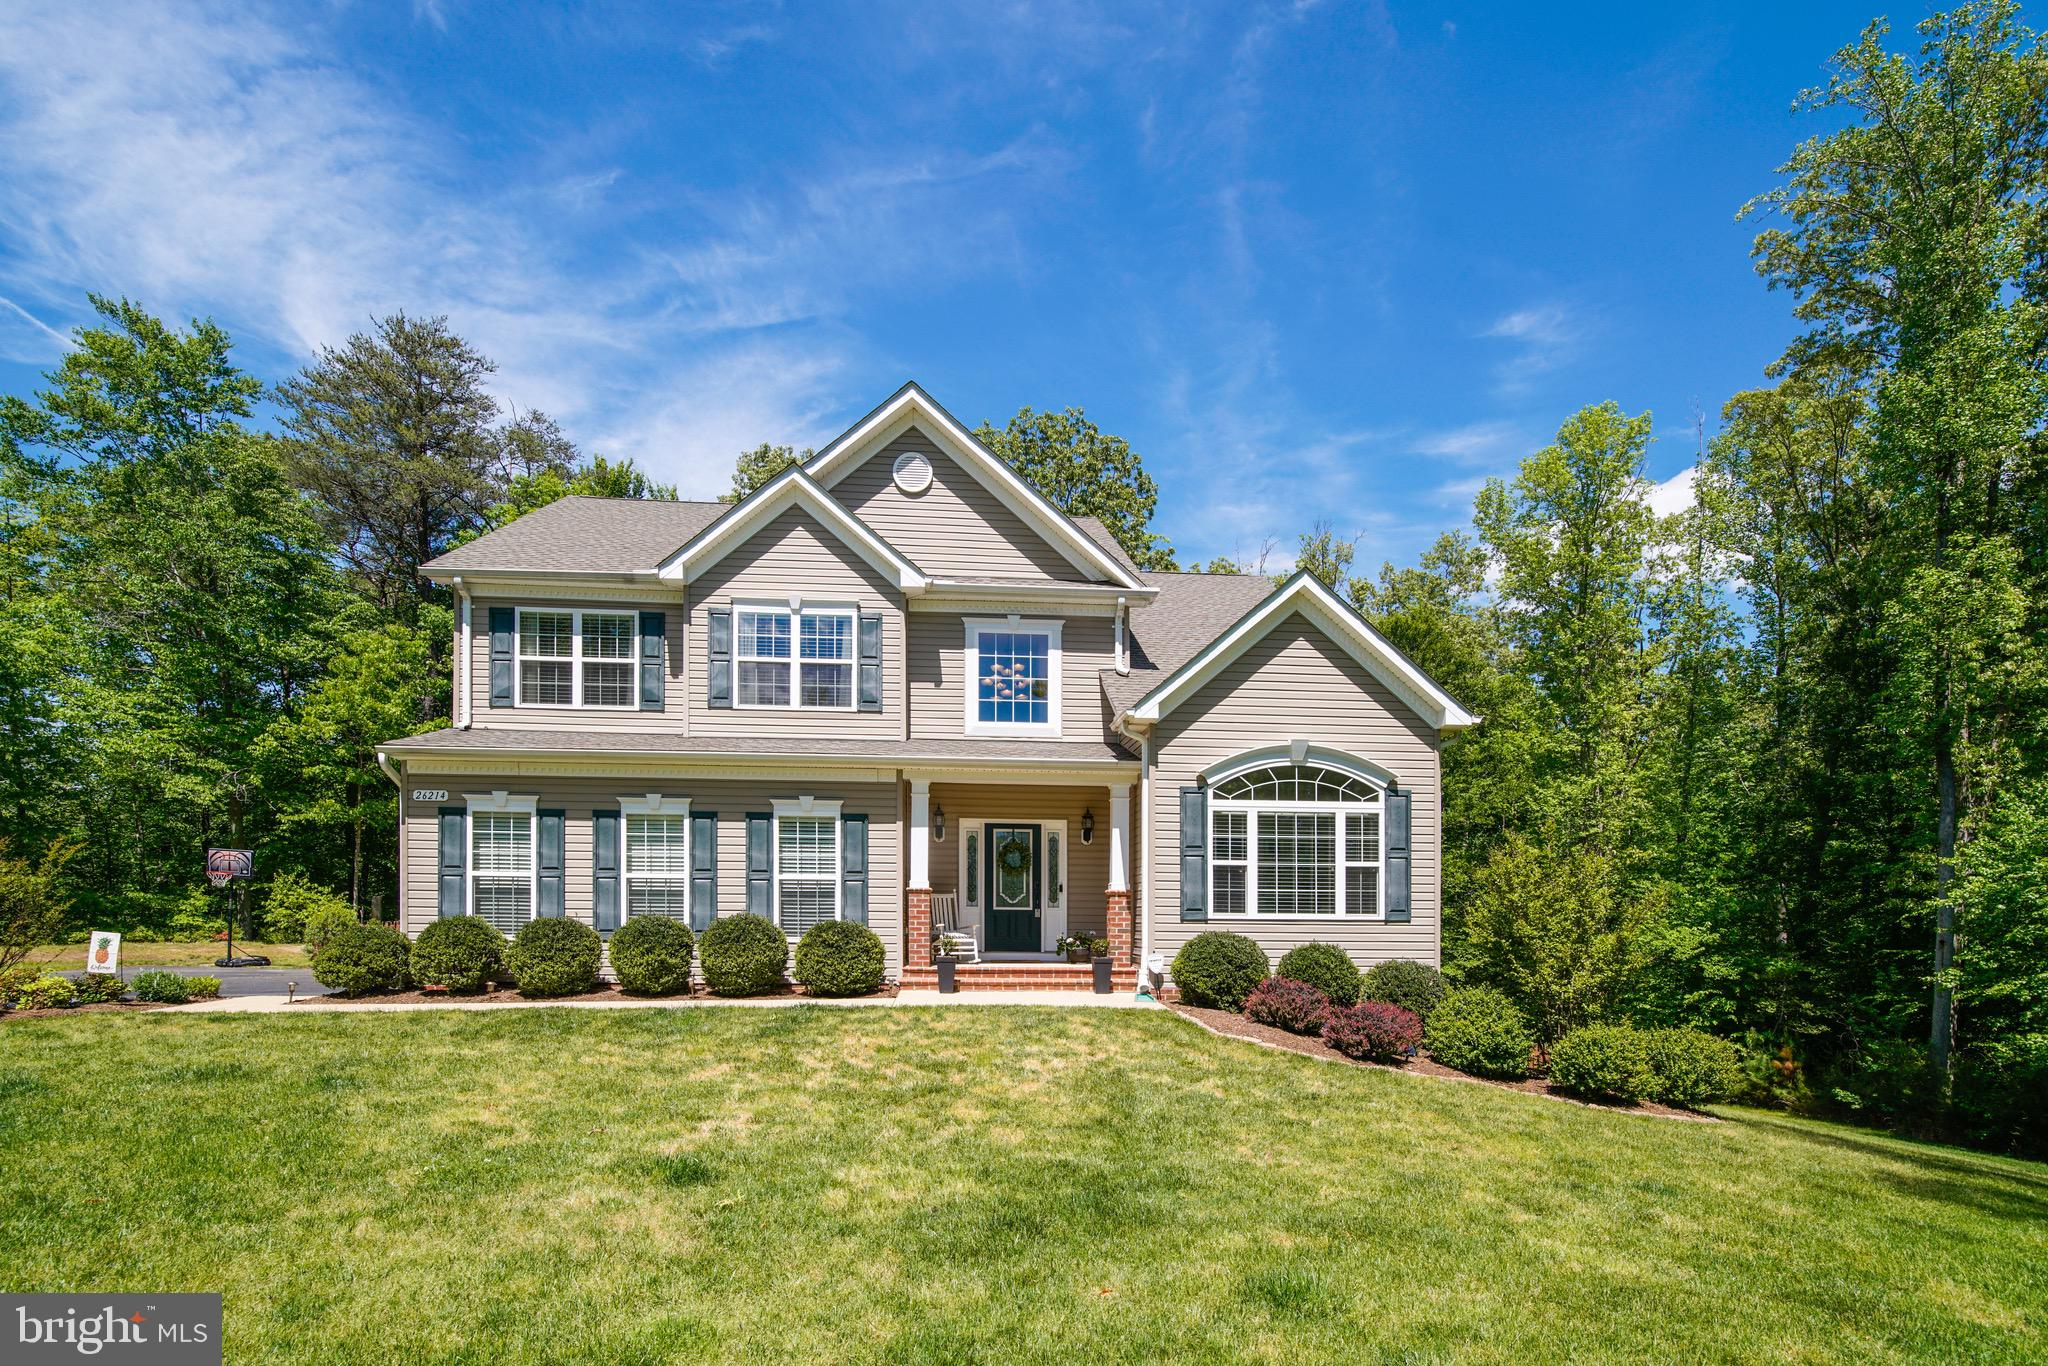 Gorgeous 4 bedrooms 3 and 1/2 bath colonial has everything you are looking for! You enter through th